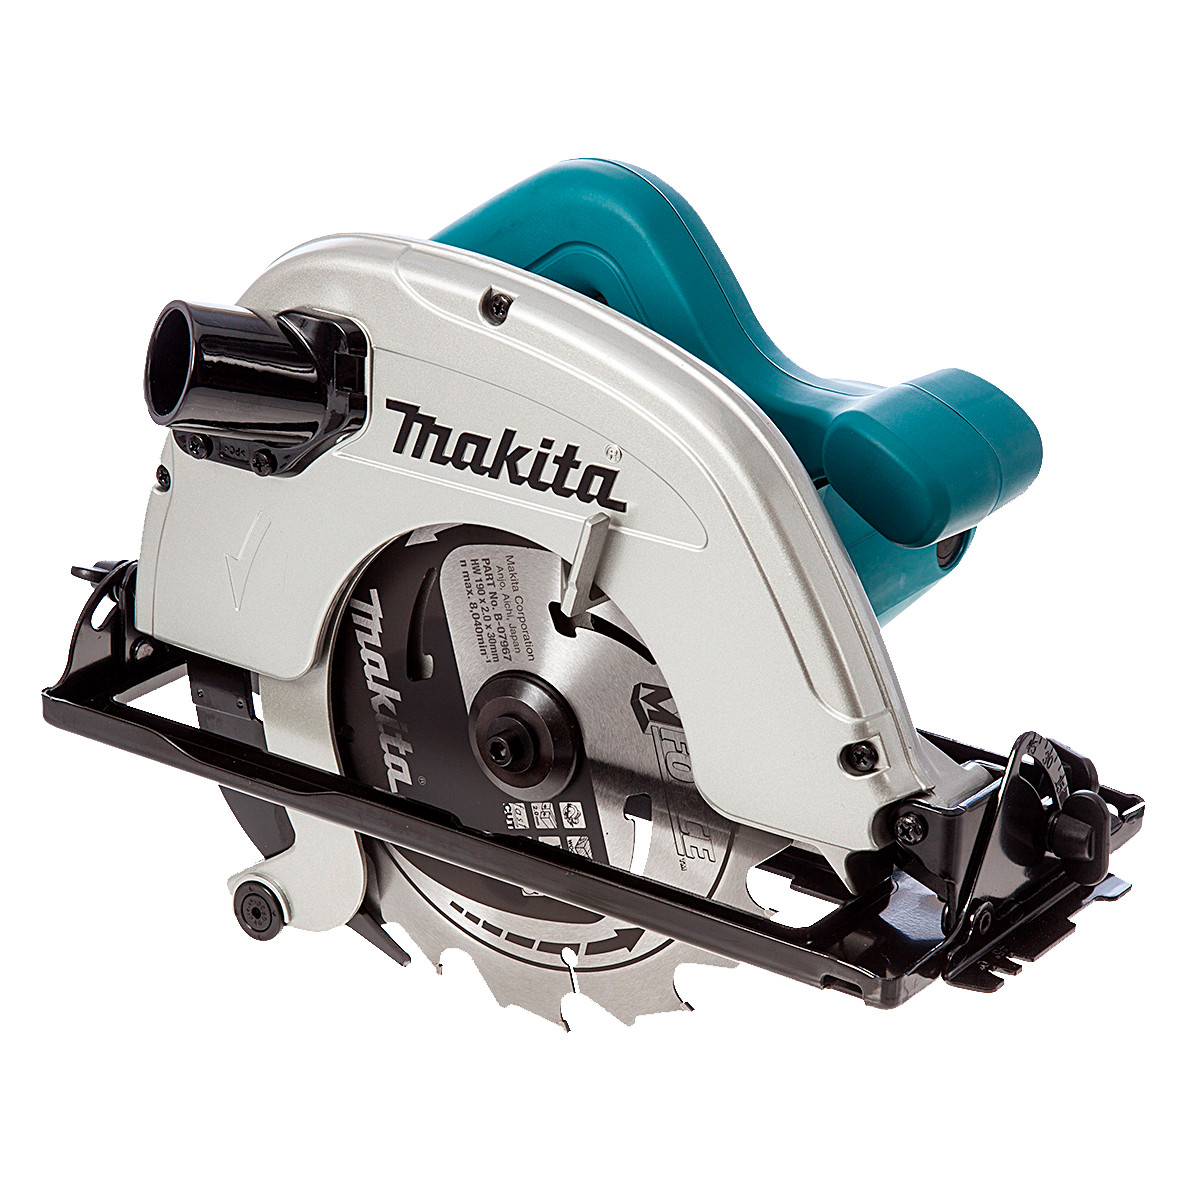 Makita HS7601J1  110V 190mm Circular Saw